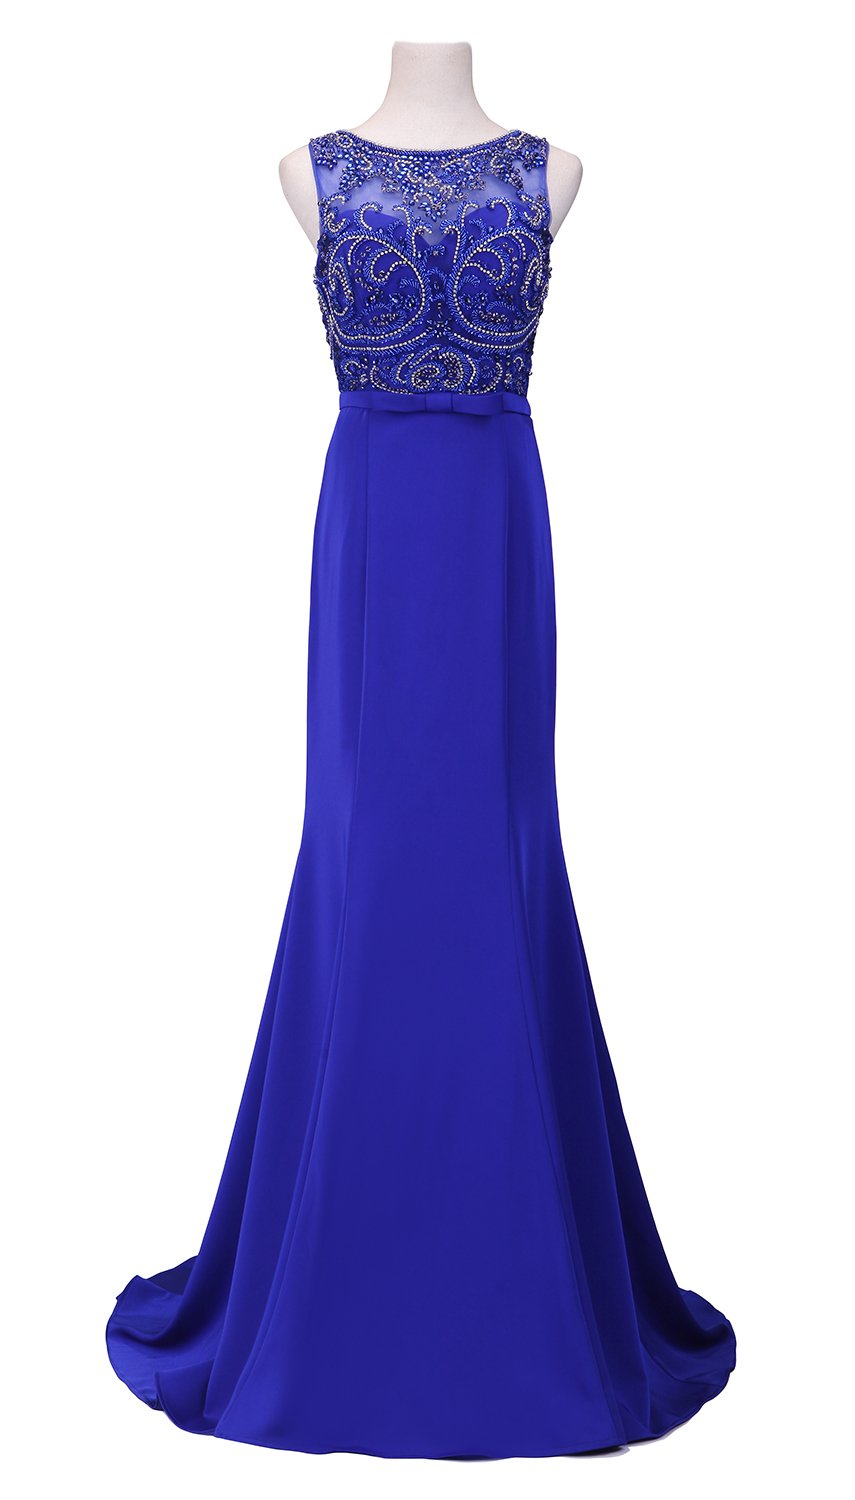 Anlin Luxury Prom Dresses Beaded Sequins Sleeveless Long Evening Gowns Blue US10